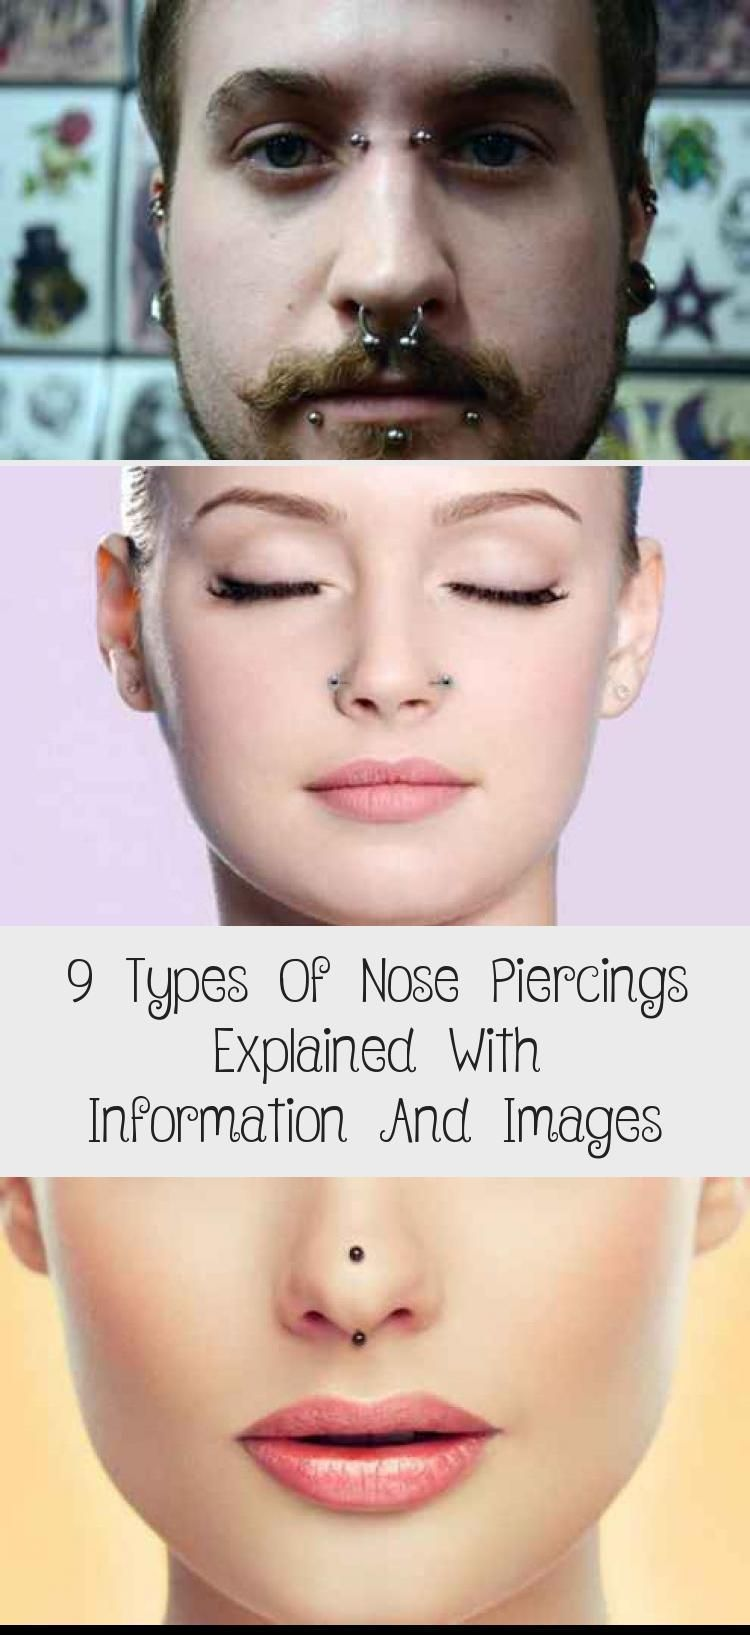 9 Types Of Nose Piercings Explained With Information And Images - PIERCINGS - D..., #cuteno... #doublenosepiercing 9 Types Of Nose Piercings Explained With Information And Images - PIERCINGS - D..., #cutenoisepiercing #Explained #Images #Information #Nose #Piercings #TYPES